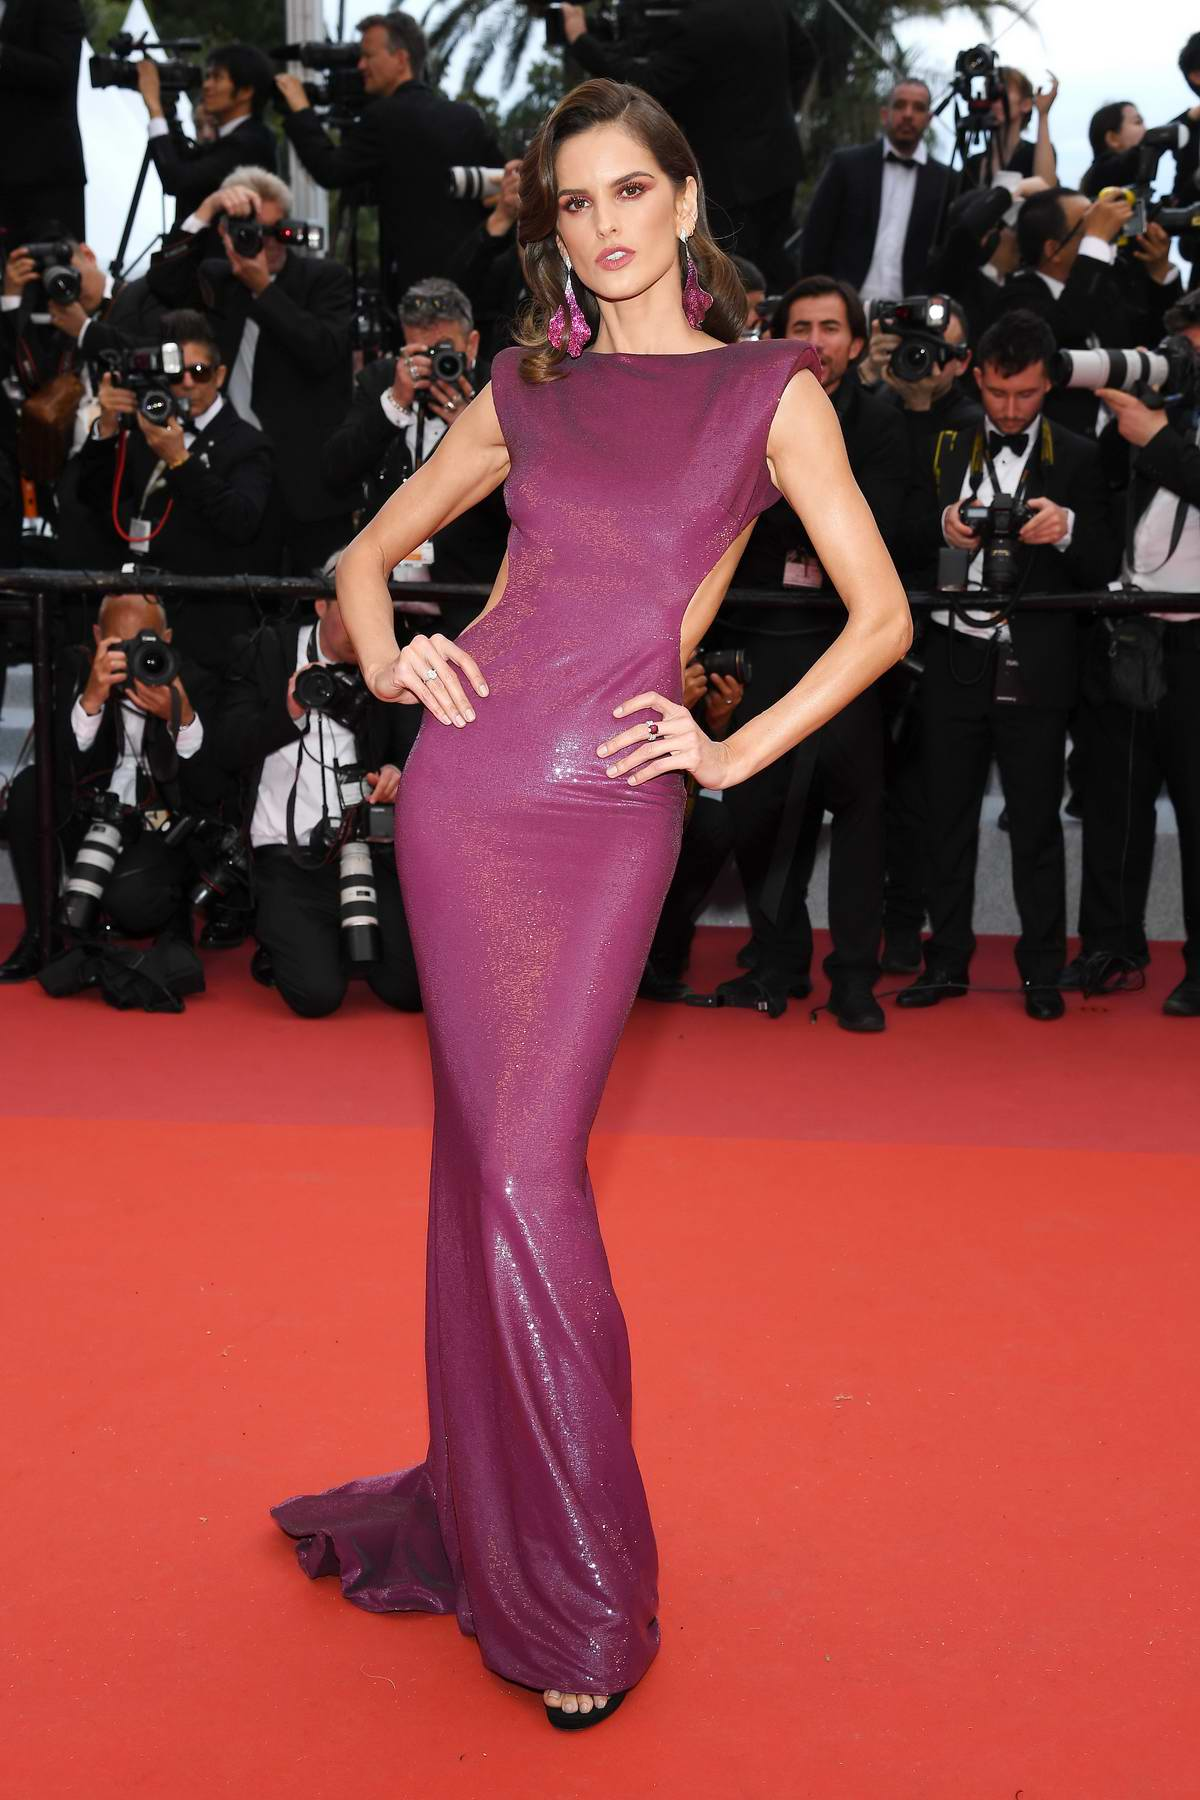 Izabel Goulart attends 'The Dead Don't Die' Premiere during The 72nd annual Cannes Film Festival in Cannes, France